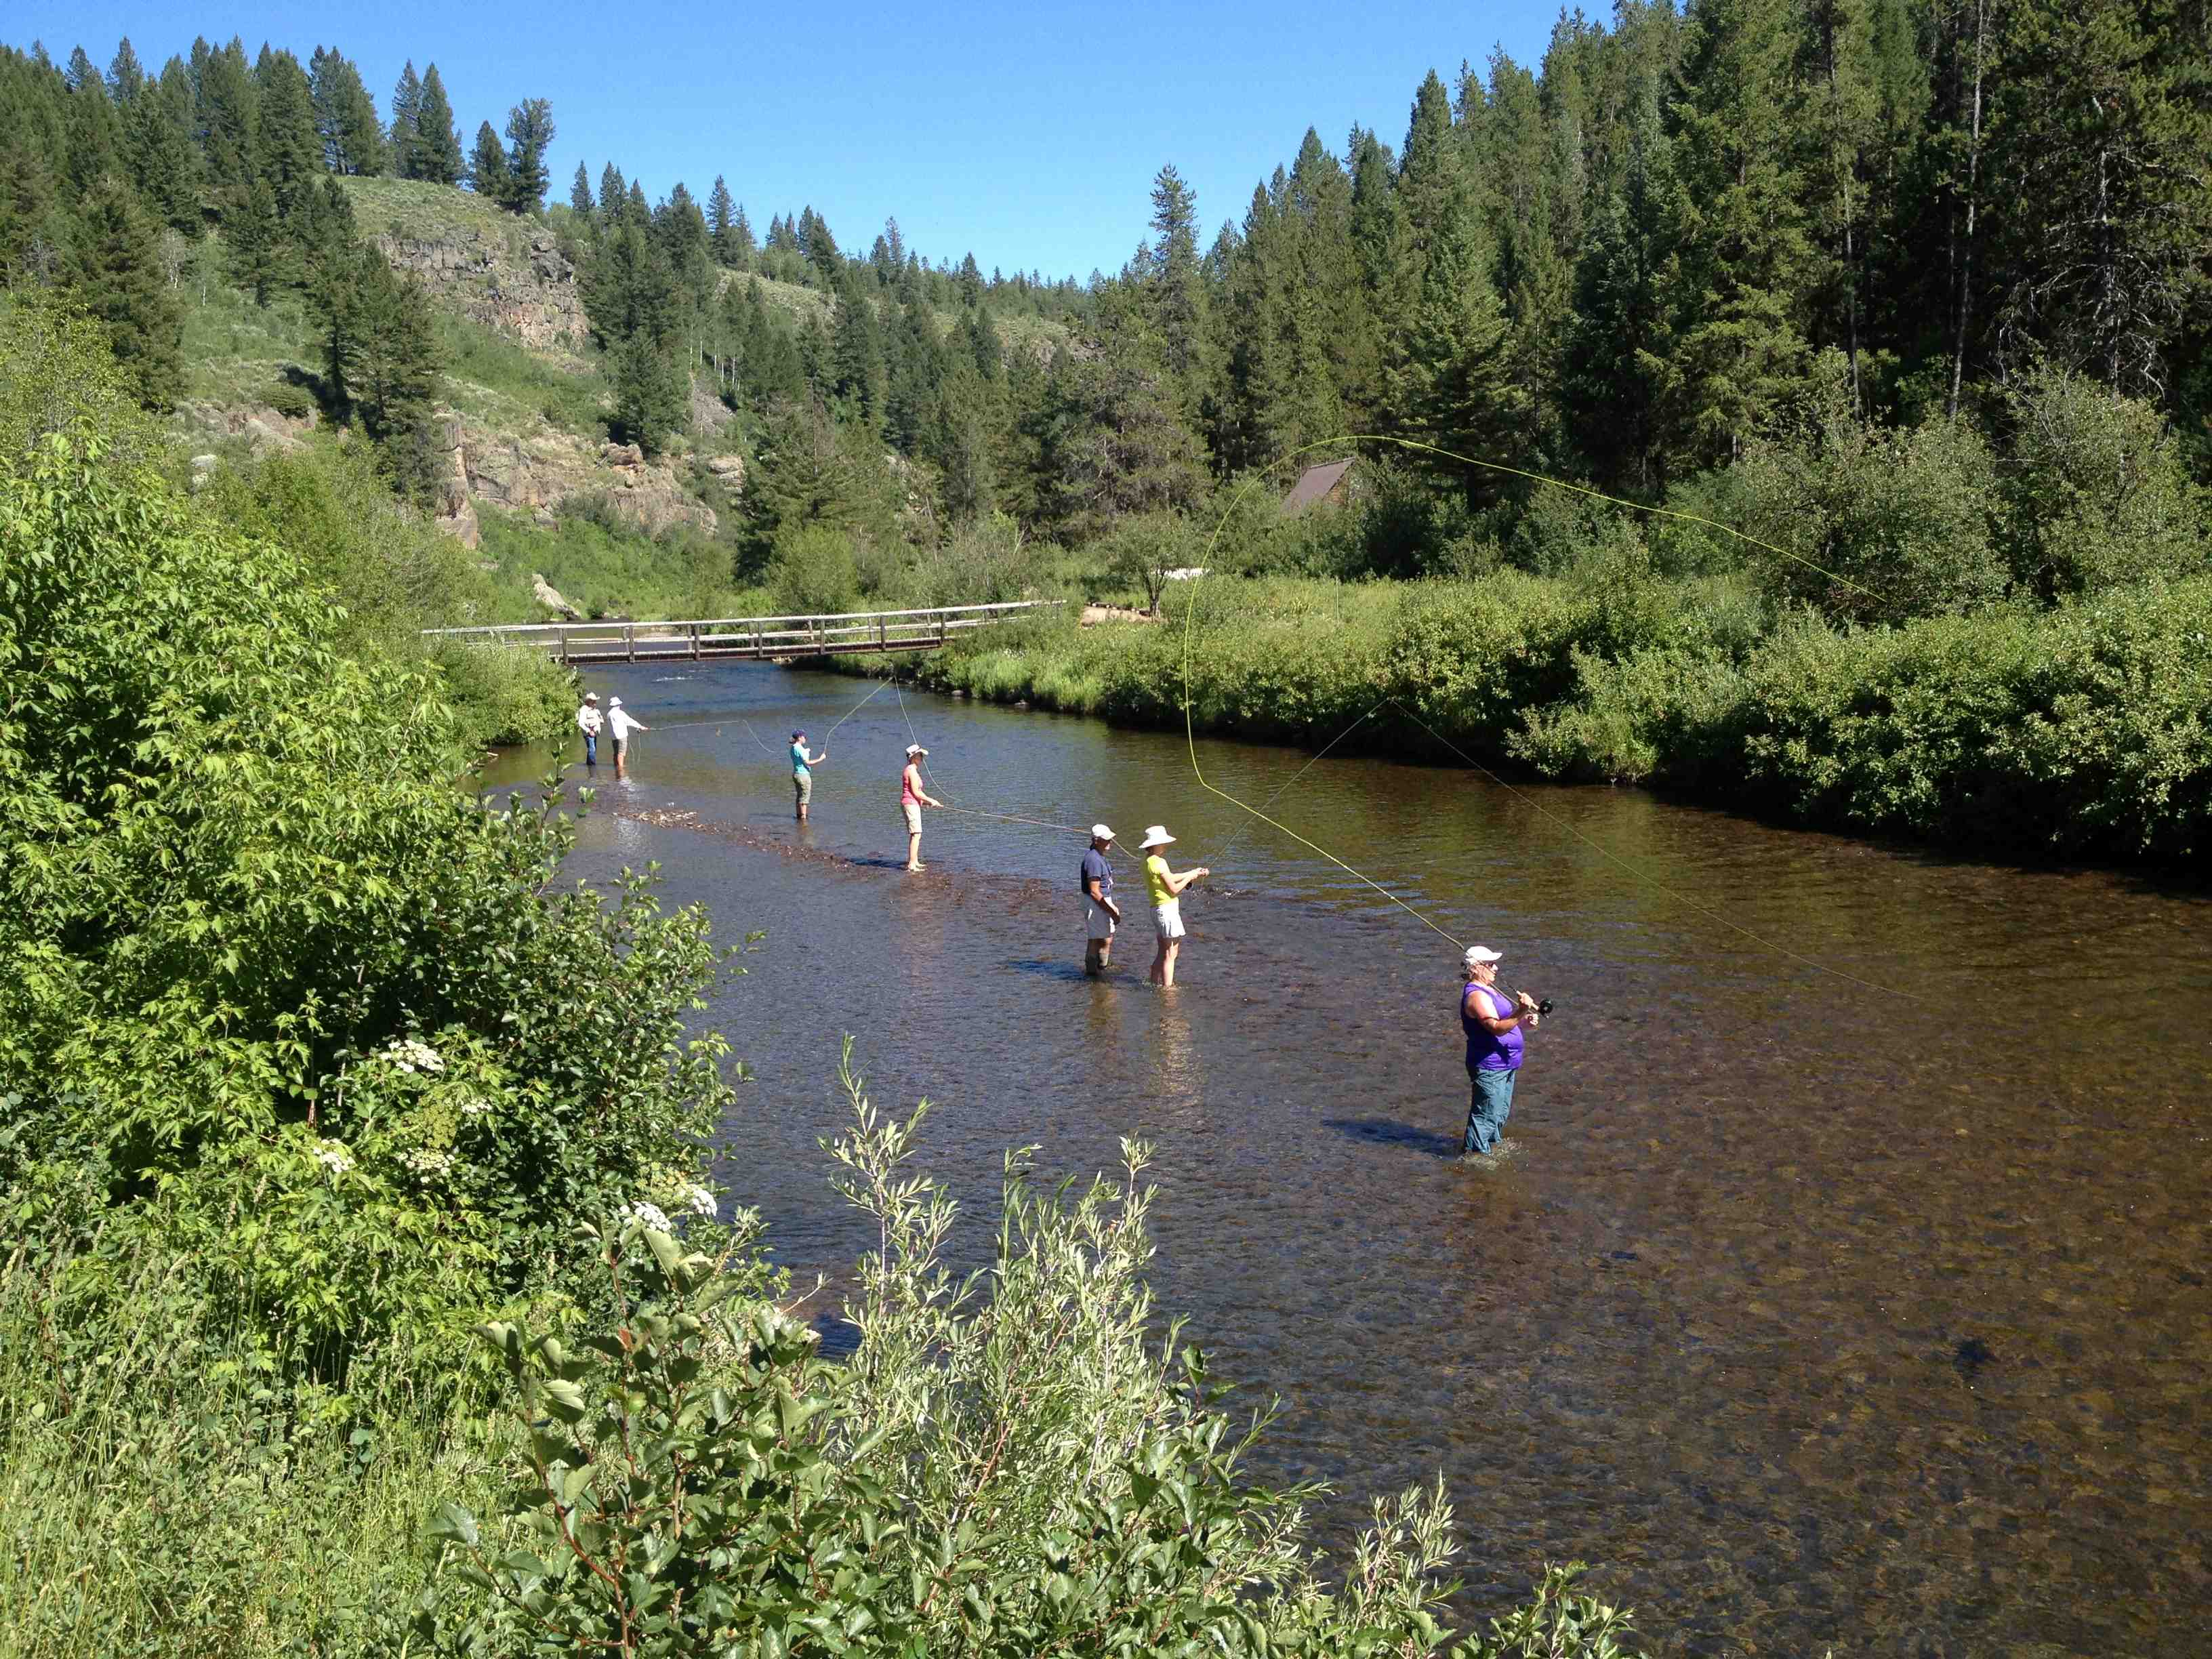 Fly fishing 101 class in idaho learn how to fly fish for for Learn how to fly fish